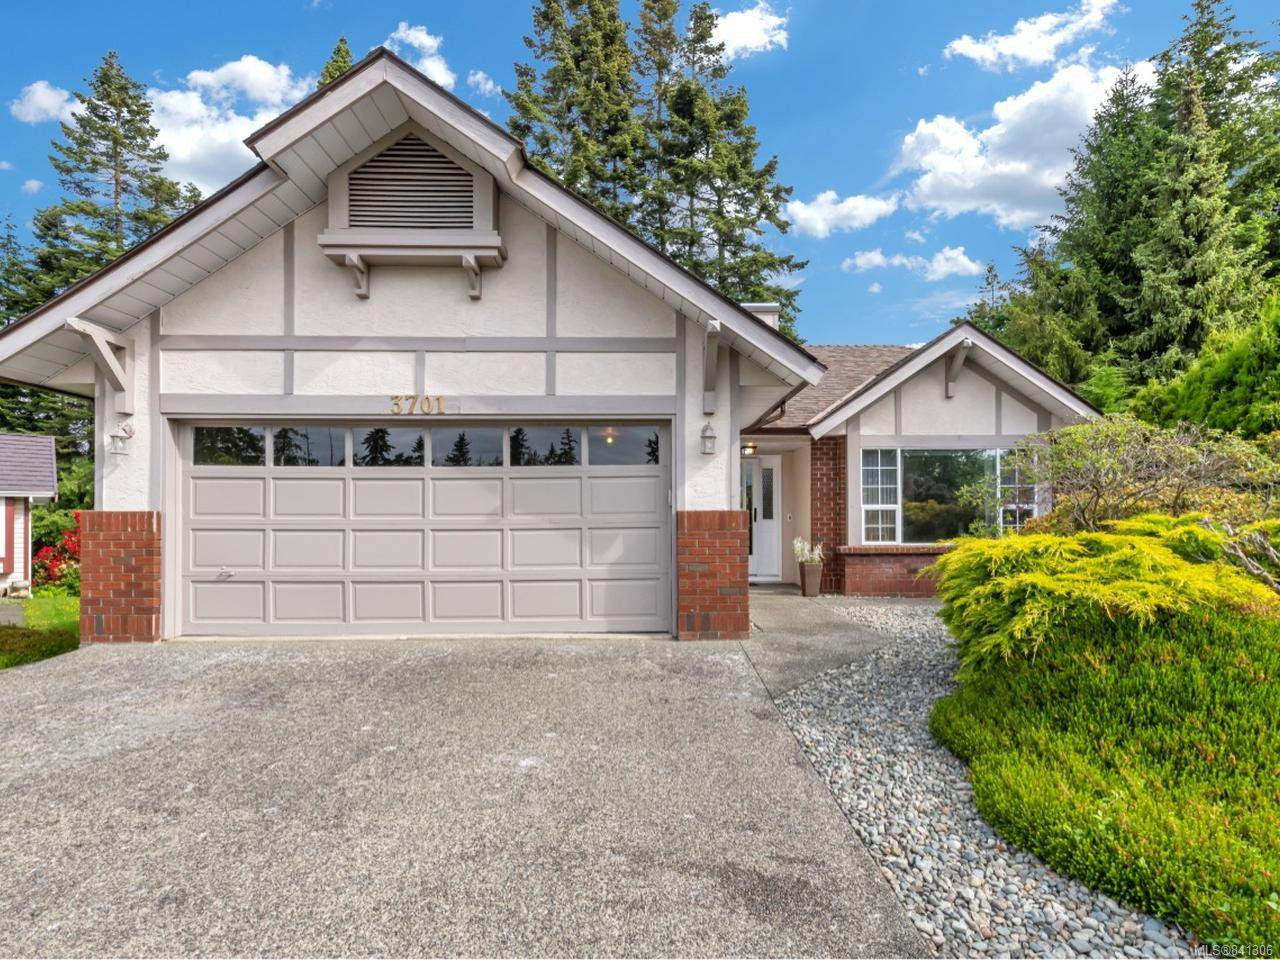 Main Photo: 3701 N Arbutus Dr in COBBLE HILL: ML Cobble Hill House for sale (Malahat & Area)  : MLS®# 841306